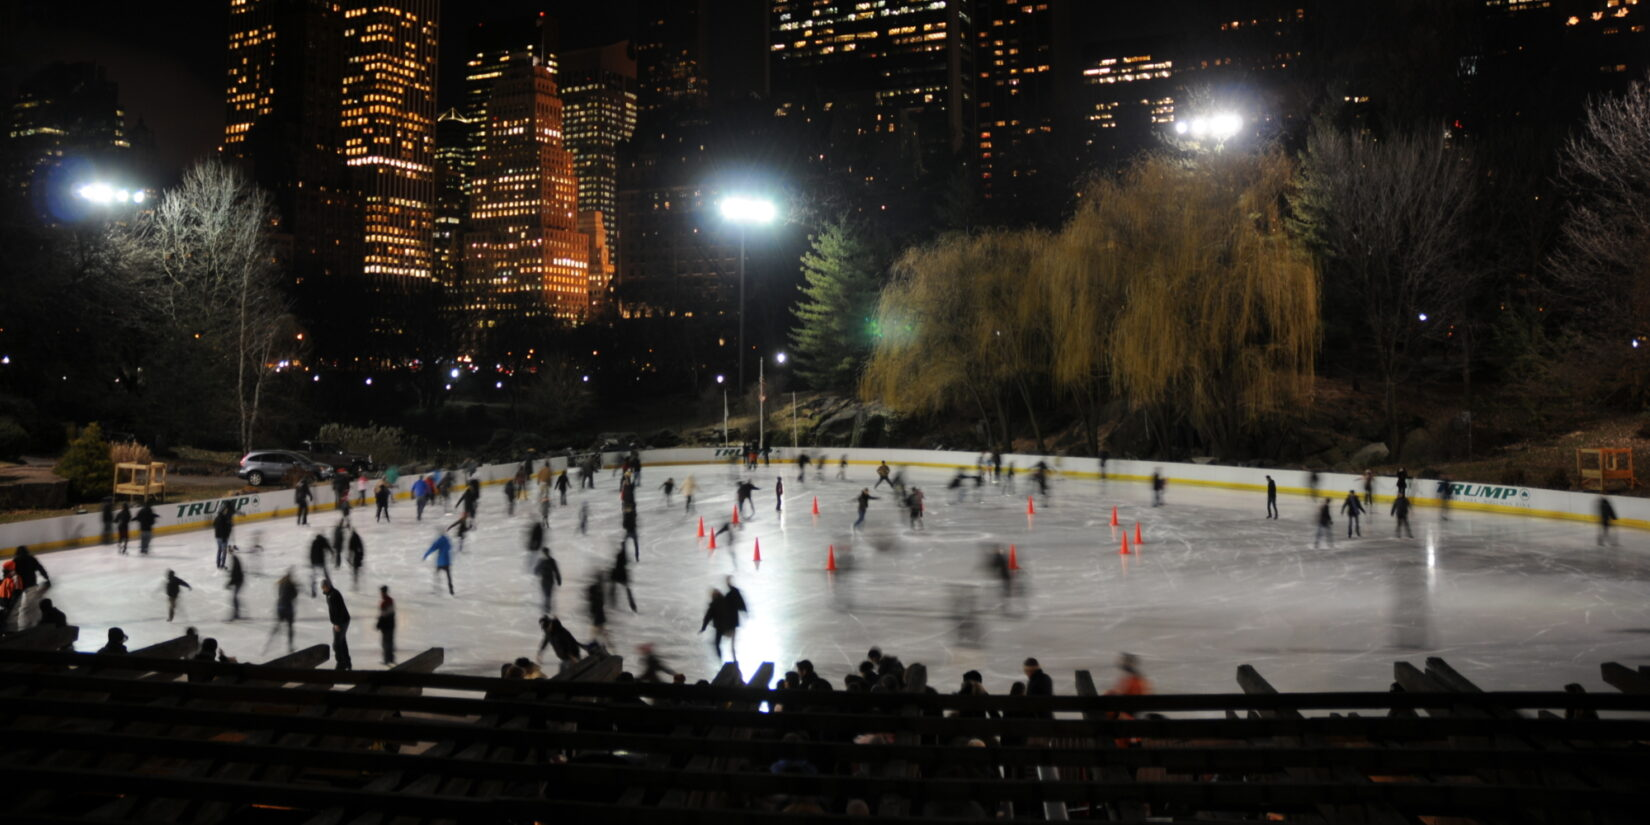 Skaters enjoy the Wollman Rink after dark, with the skyline of Manhattan as a backdrop